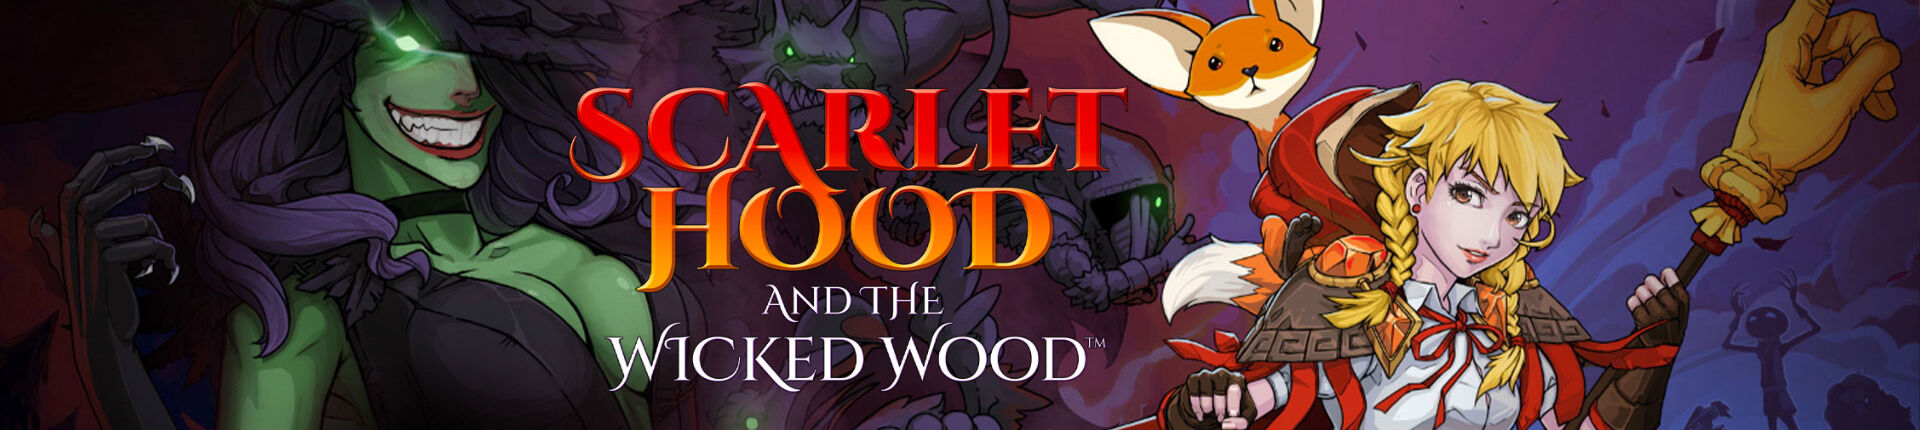 <a href='https://www.mightygamesmag.de/all-game-list/scarlet-hood-and-the-wicked-wood/'>Zum Spiel</a>